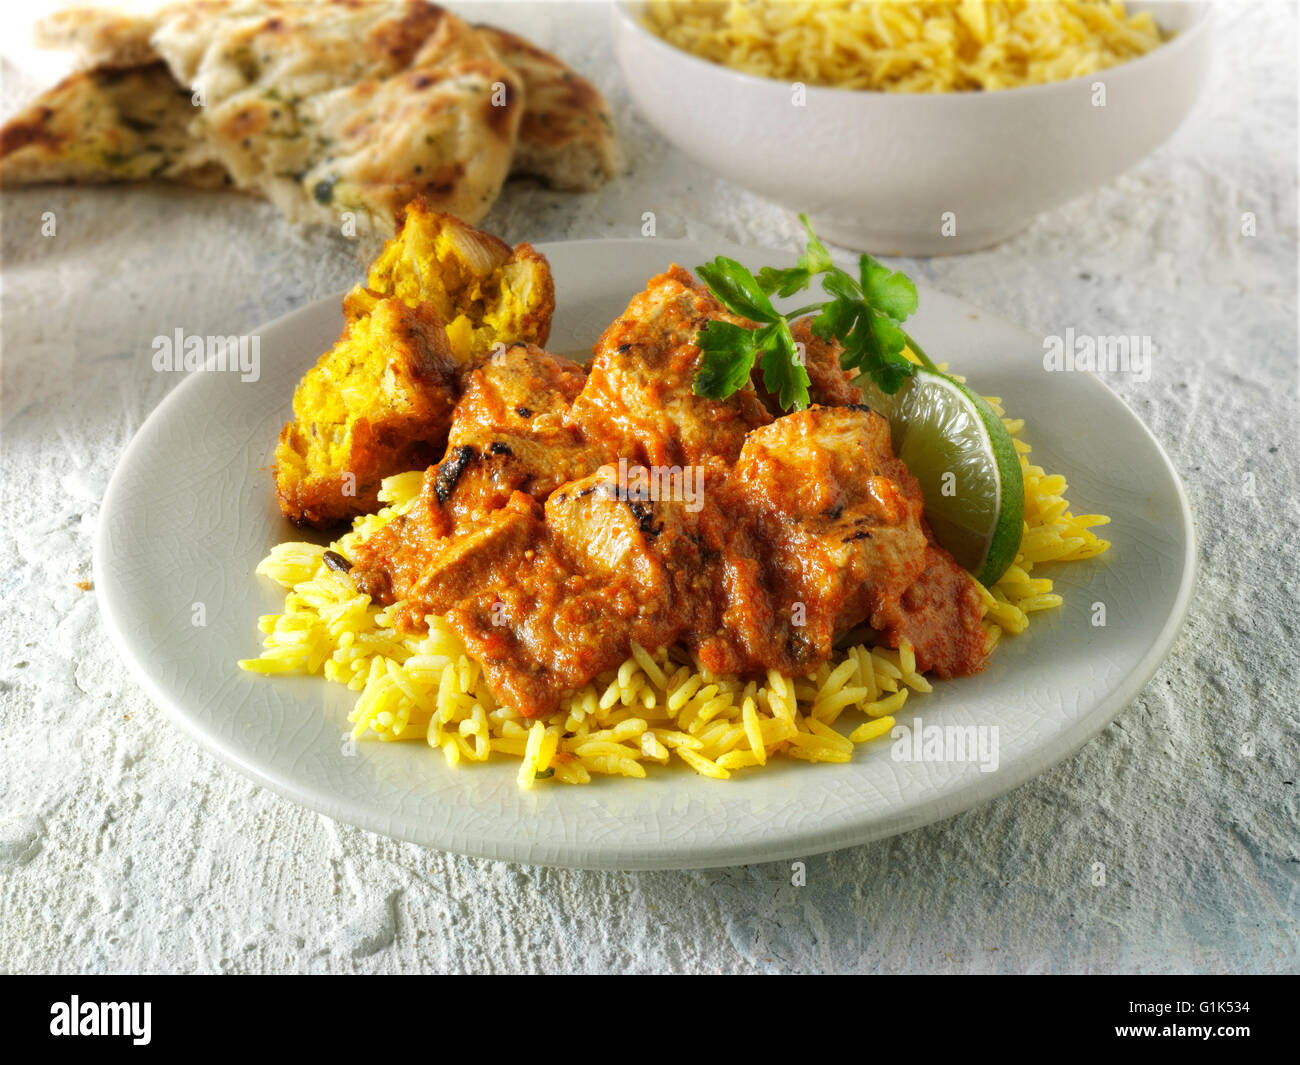 Butter Chicken Asian curry with pilau rice and an onion bhaji - Stock Image